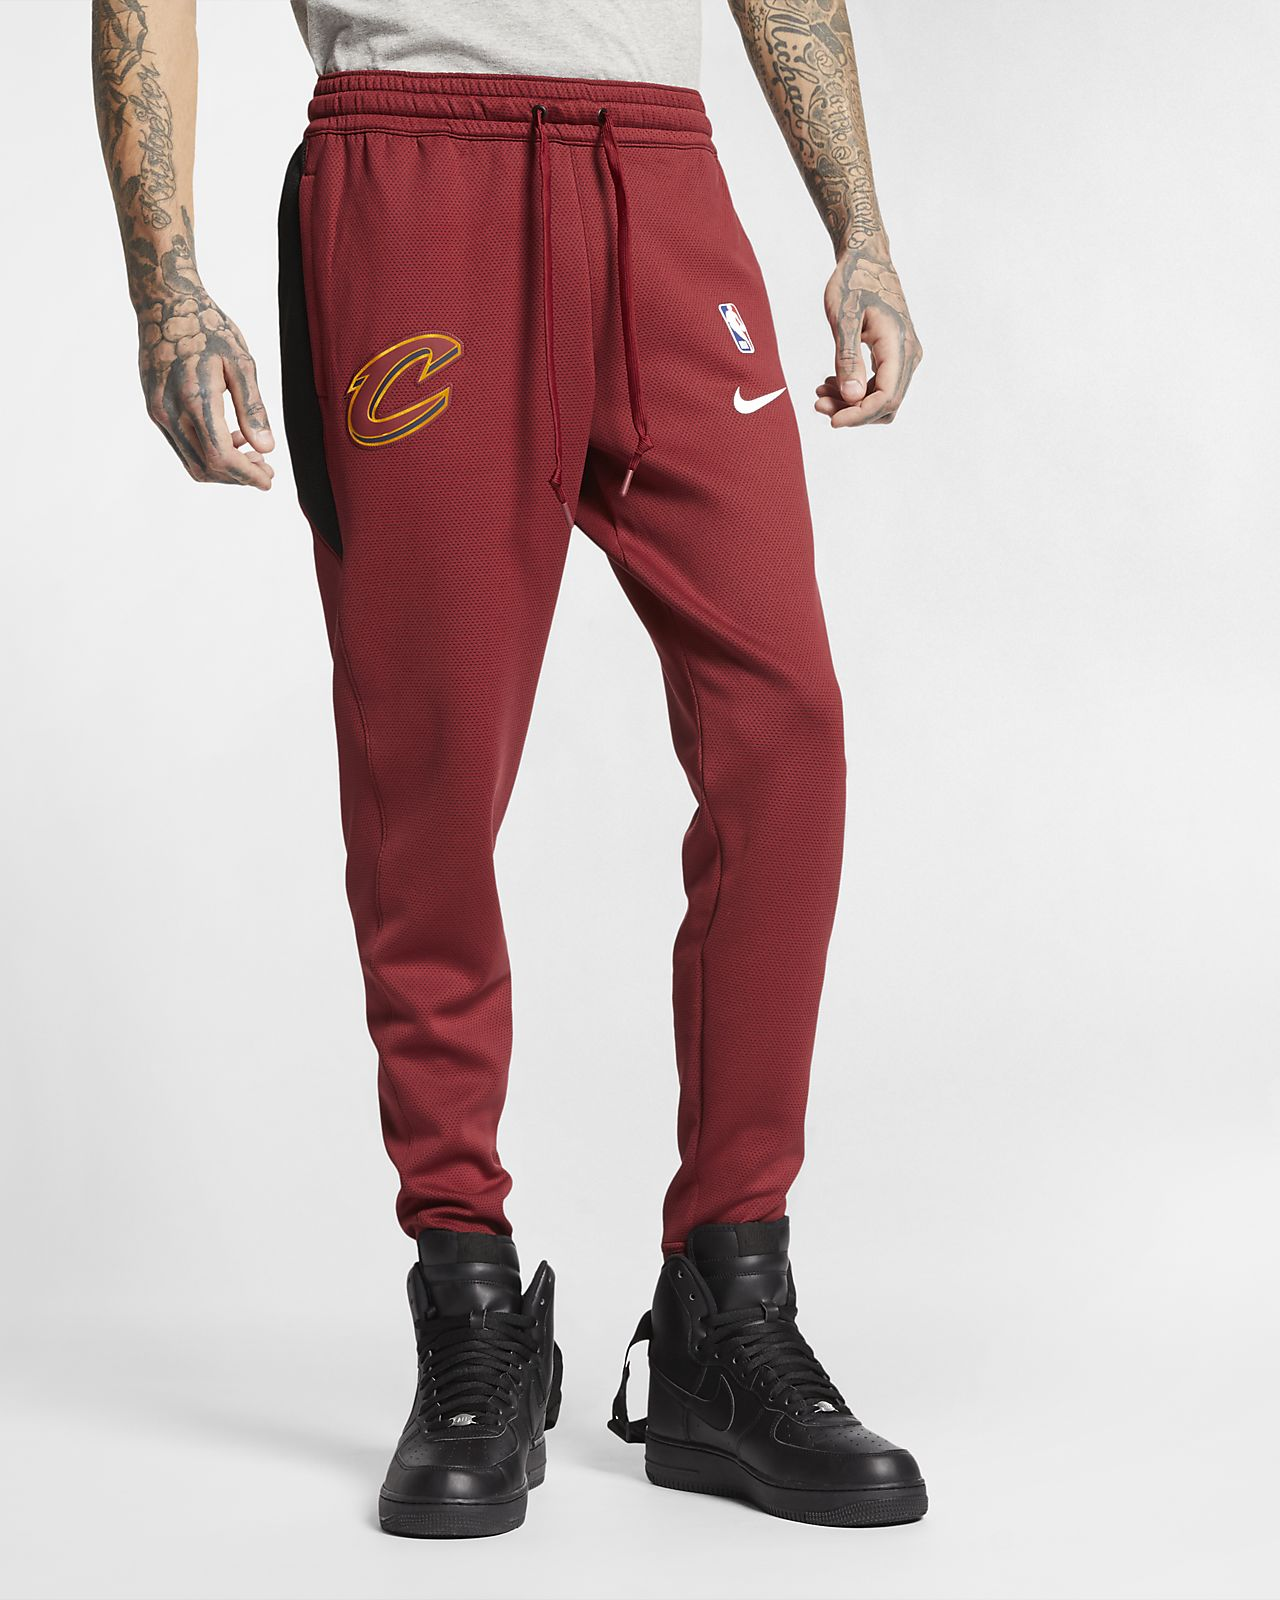 Cleveland Cavaliers Nike Therma Flex Showtime Men's NBA Pants